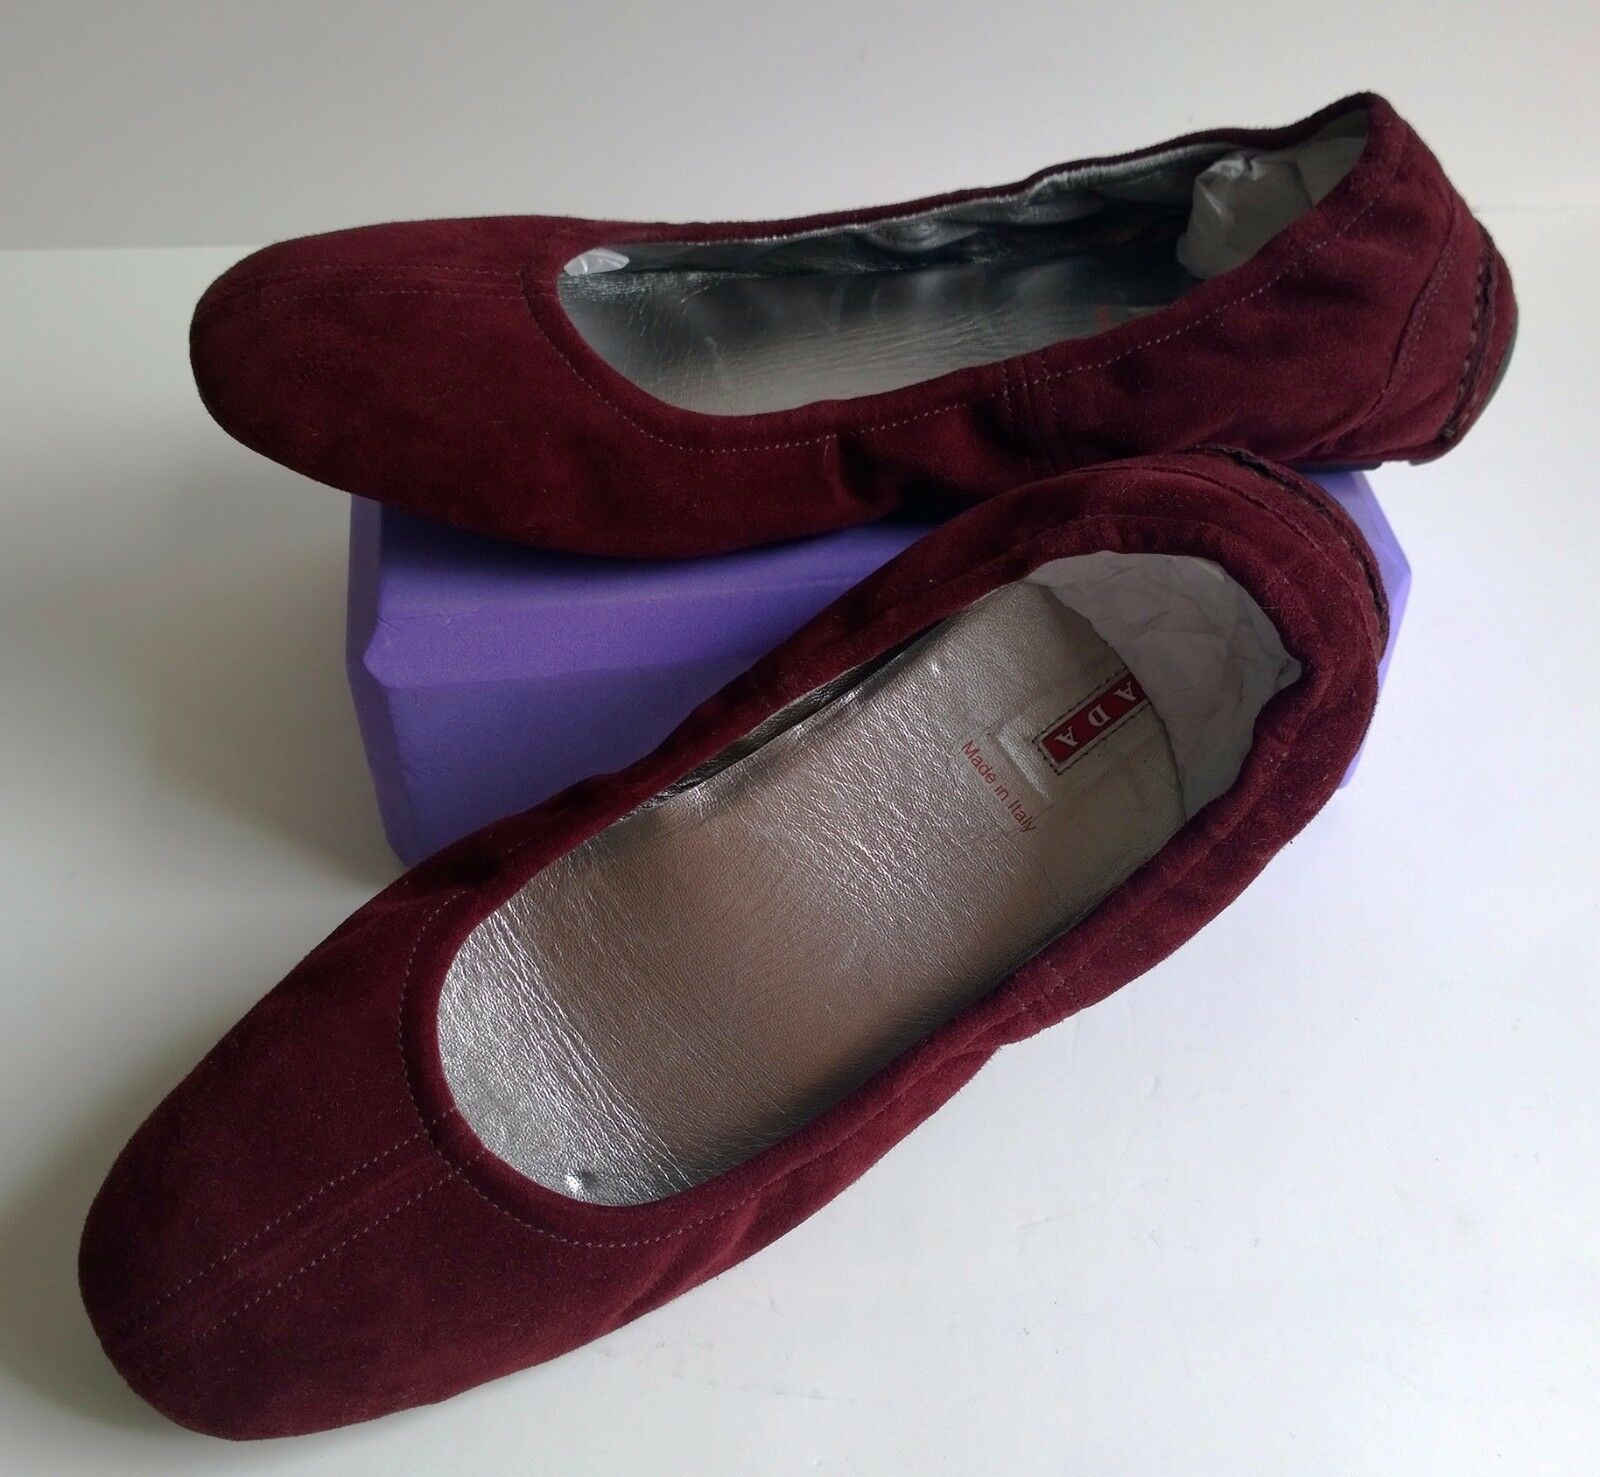 PRADA Burgundy Suede Moccasins Flats Leather Ballet shoes Sz 9.5